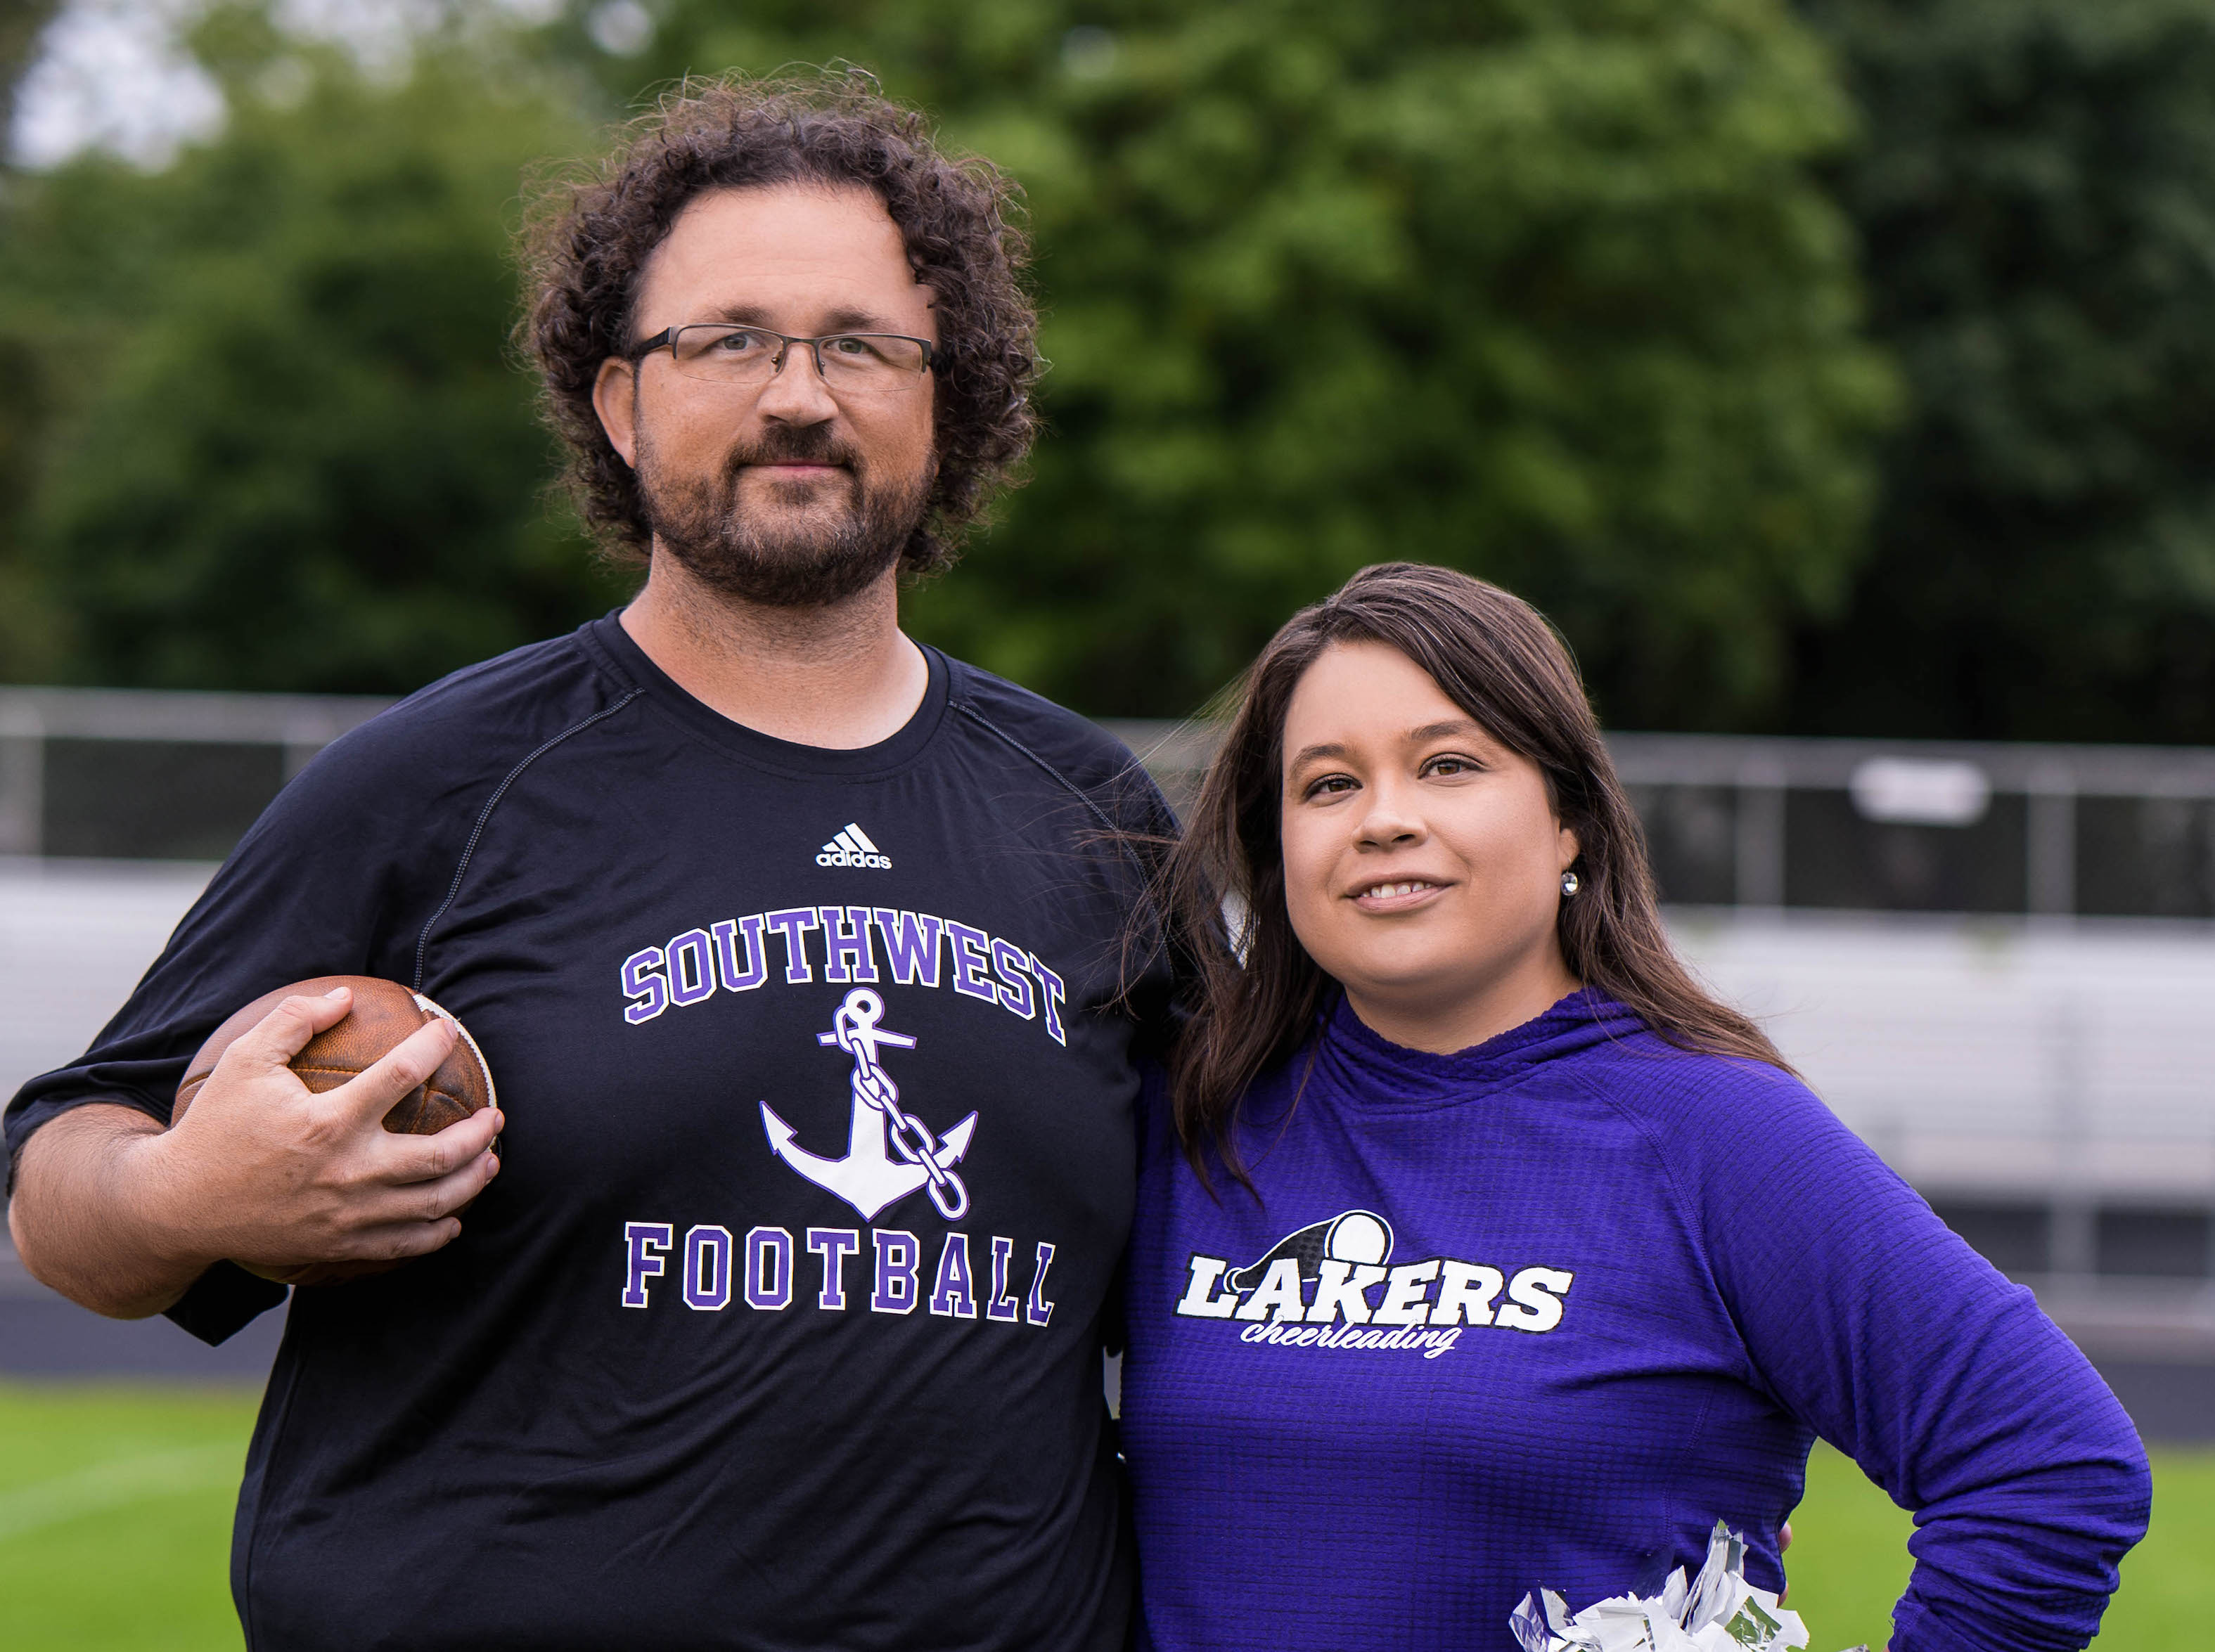 Josh and Stephanie Zoucha coach the Southwest High School football and cheer teams, respectively. Submitted photo